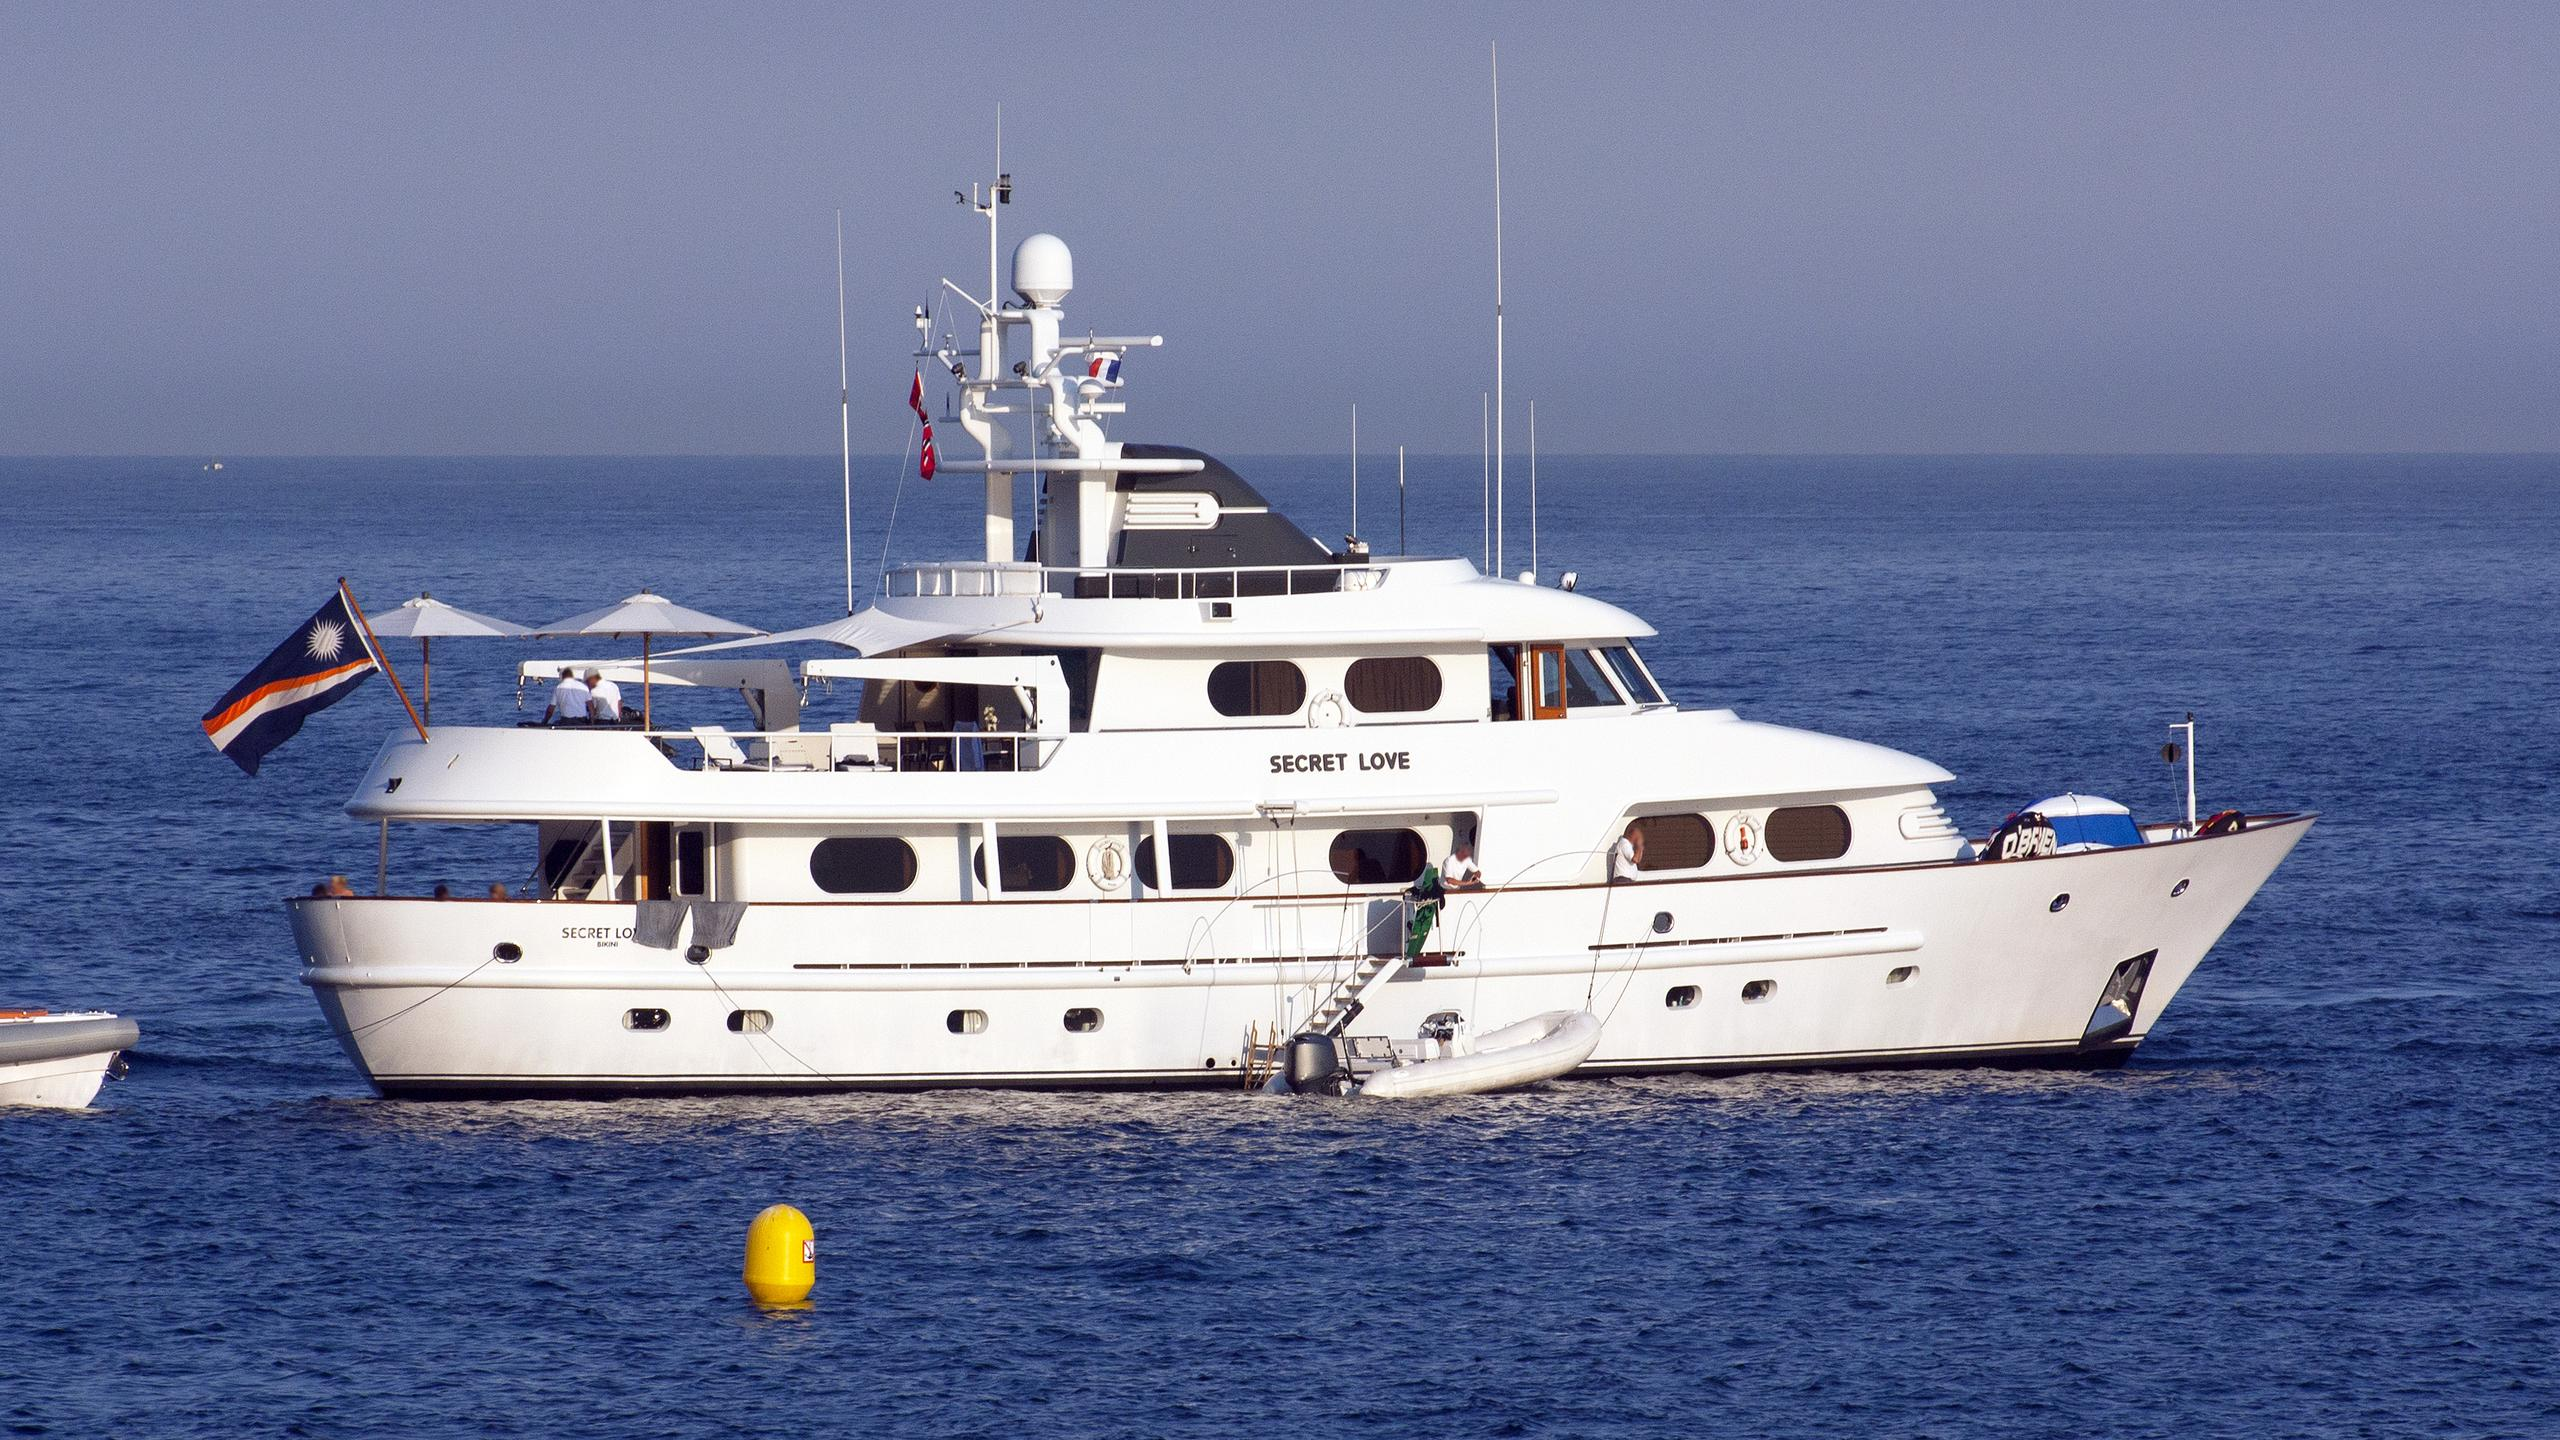 secret-love-motor-yacht-amels-1990-36m-cruising